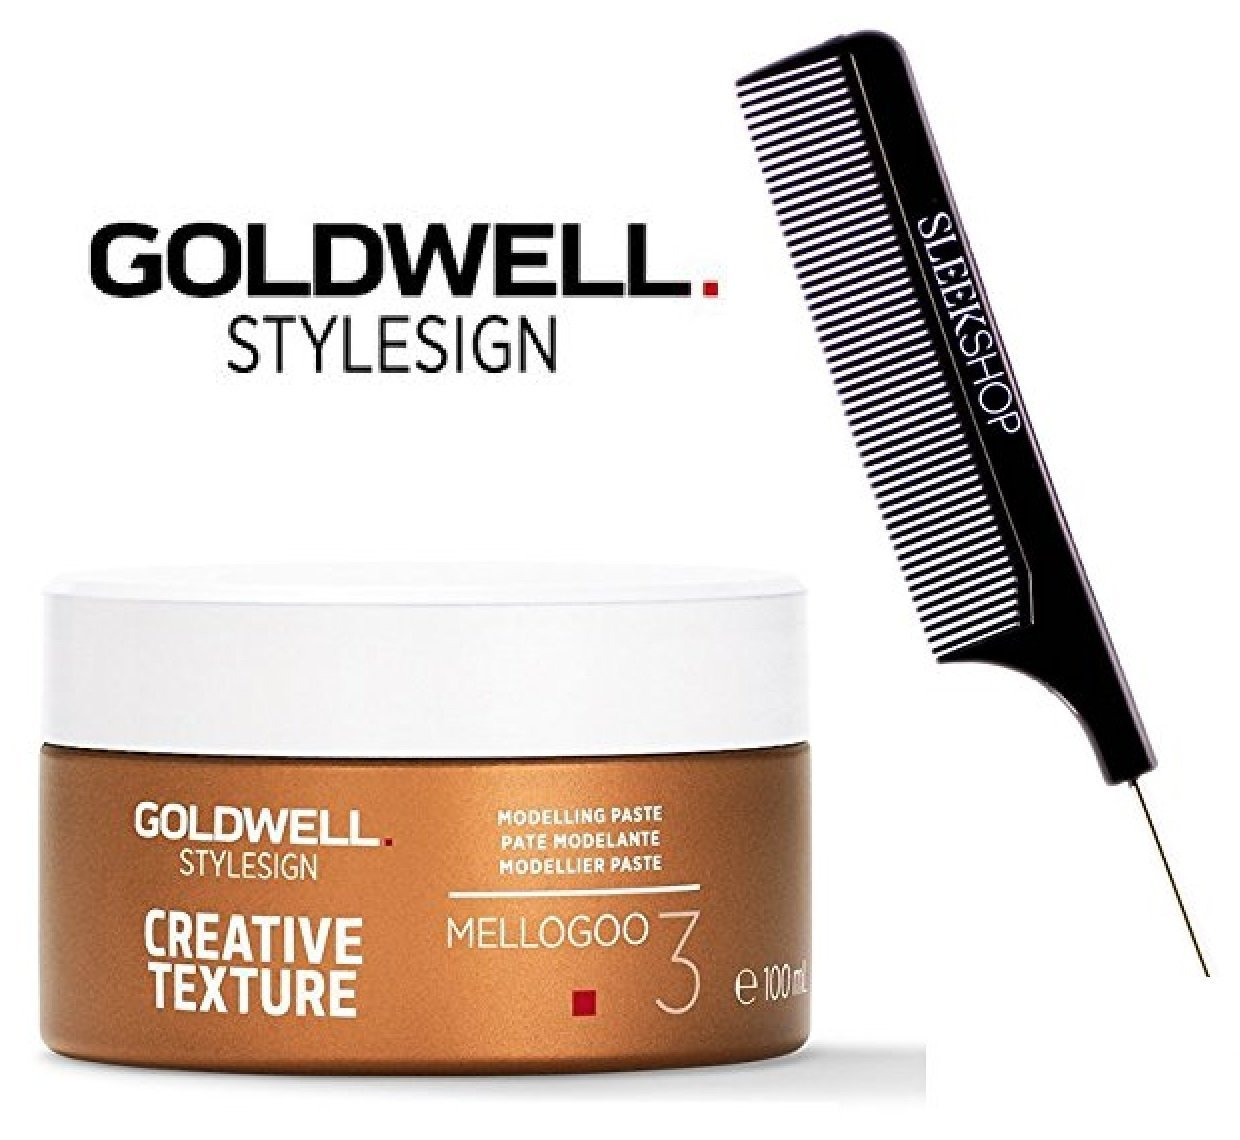 Goldwell Stylesign Creative Texture Mellogoo 3 Modeling Paste- 3.3oz (with Sleek Steel Pin Tail Comb) BHBUKPPOAZIN1466